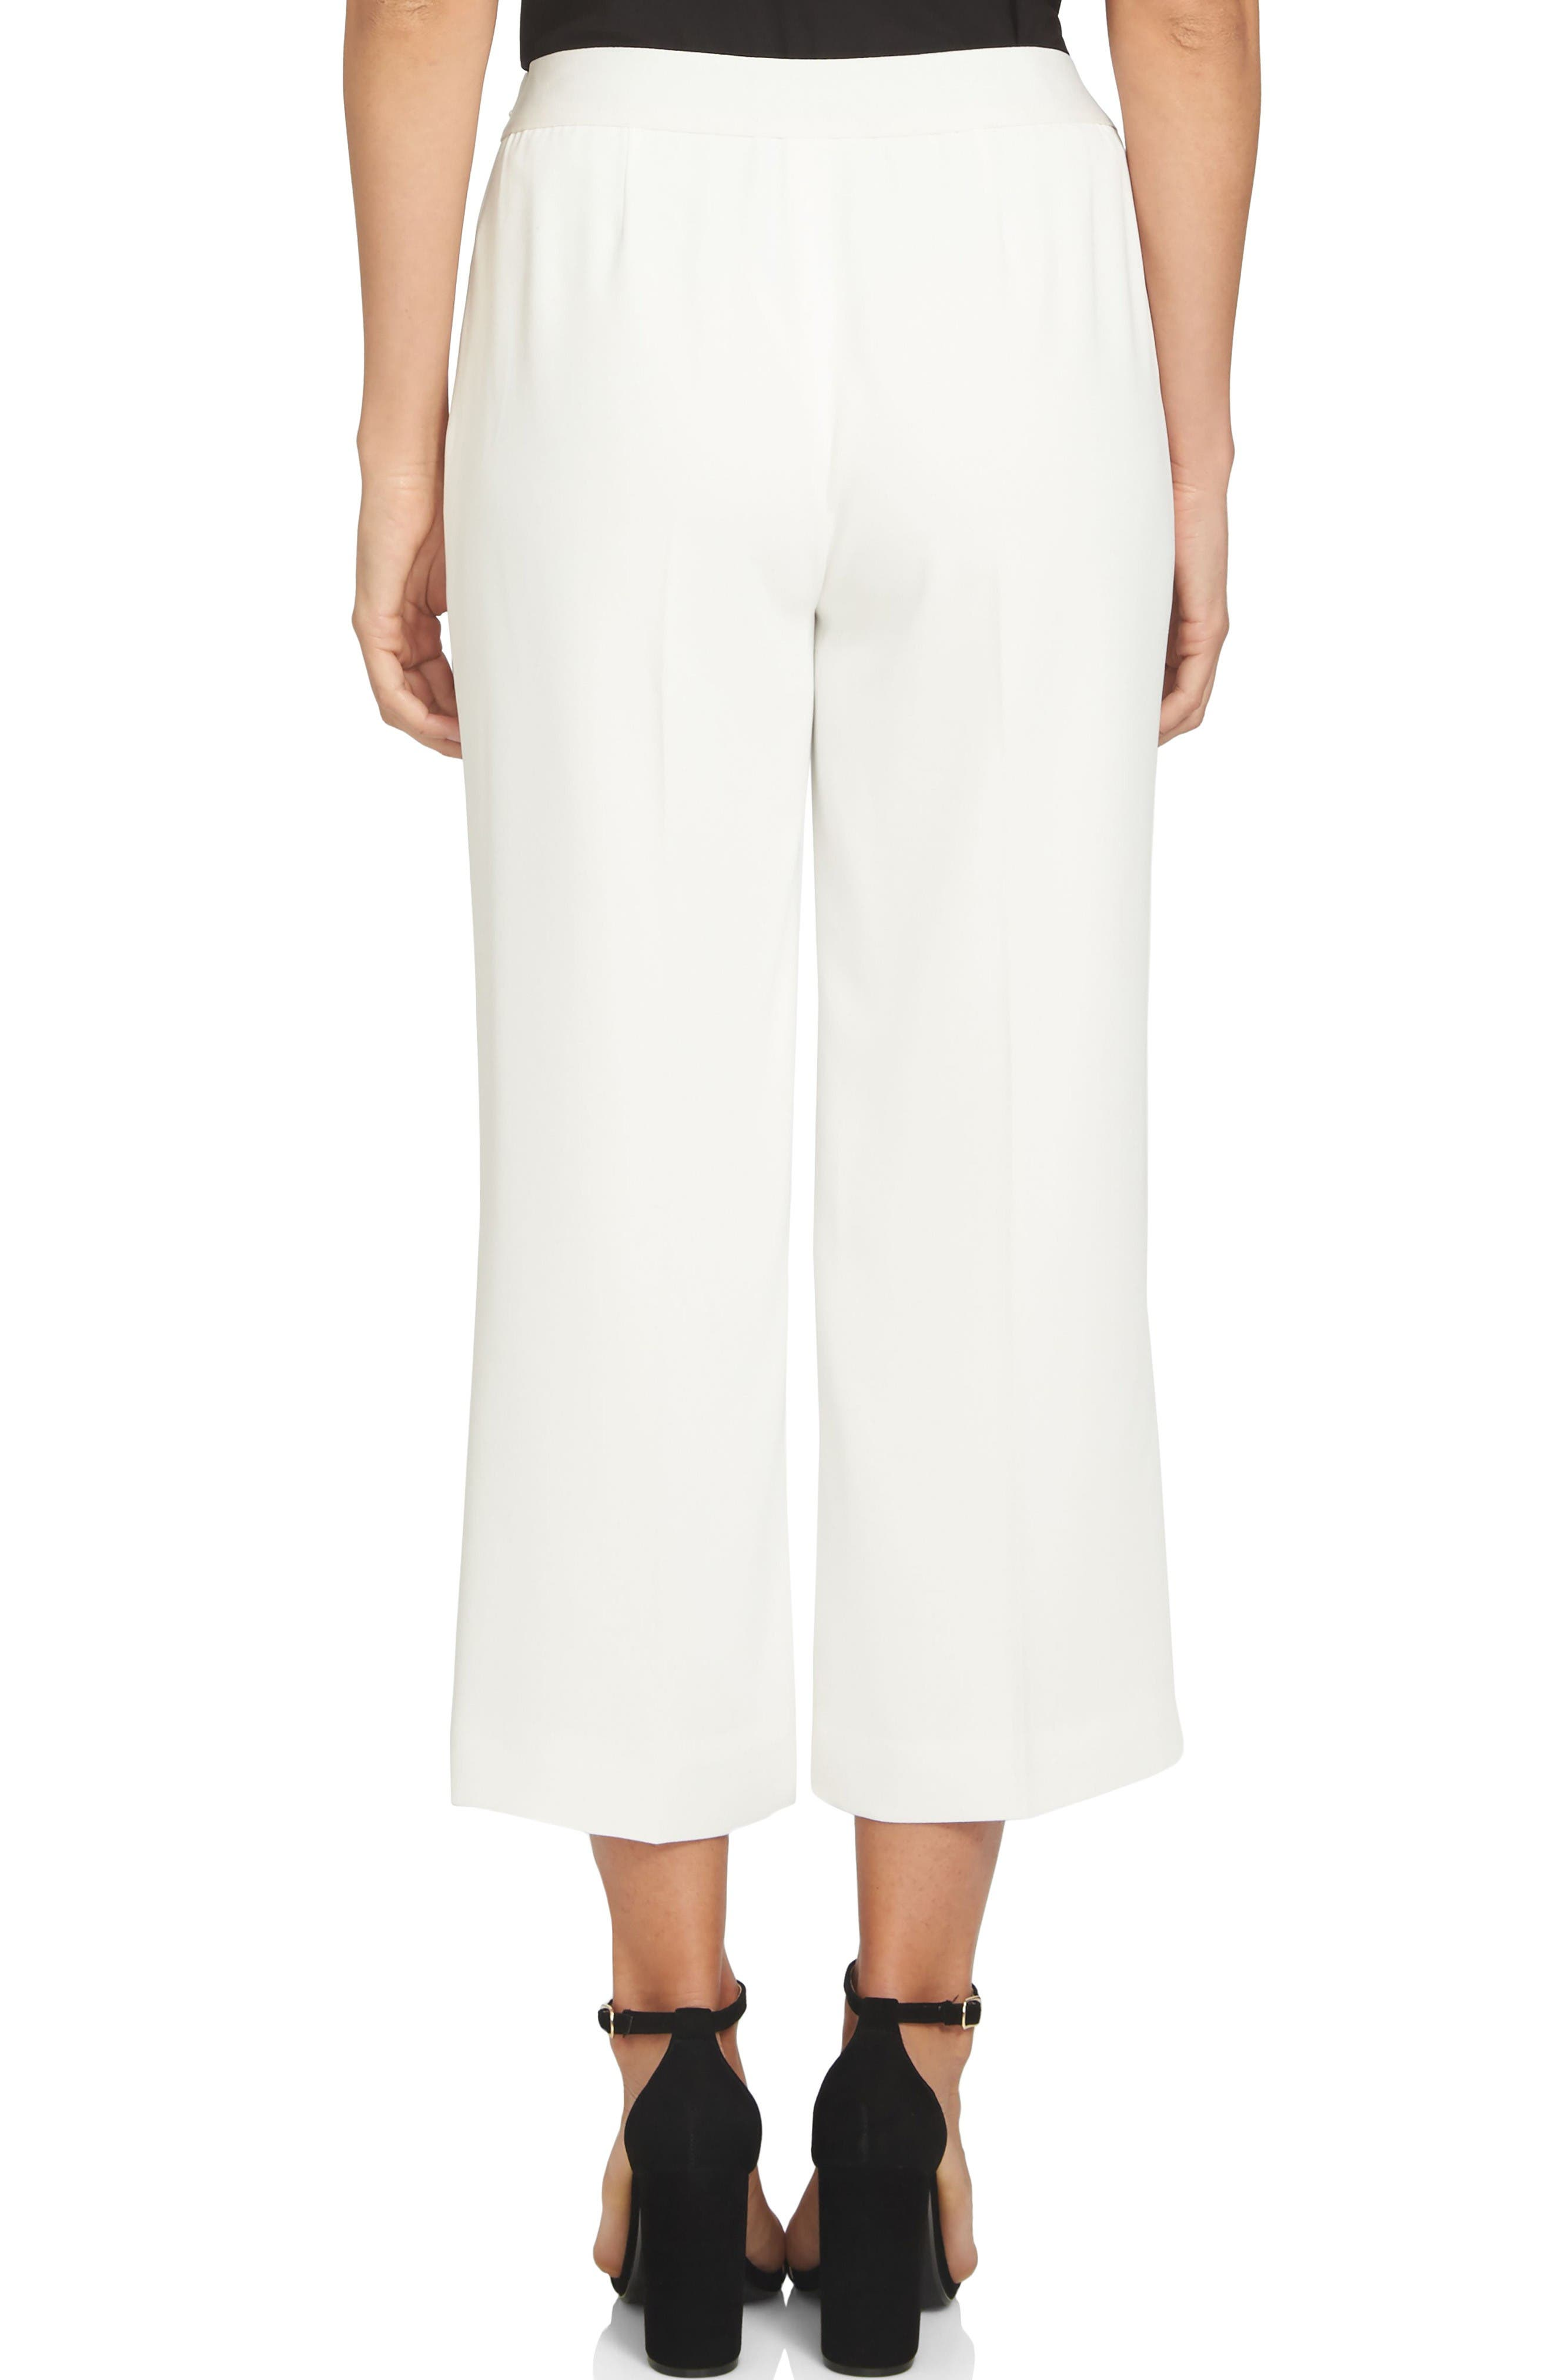 Moss Crepe Crop Trousers,                             Alternate thumbnail 2, color,                             New Ivory